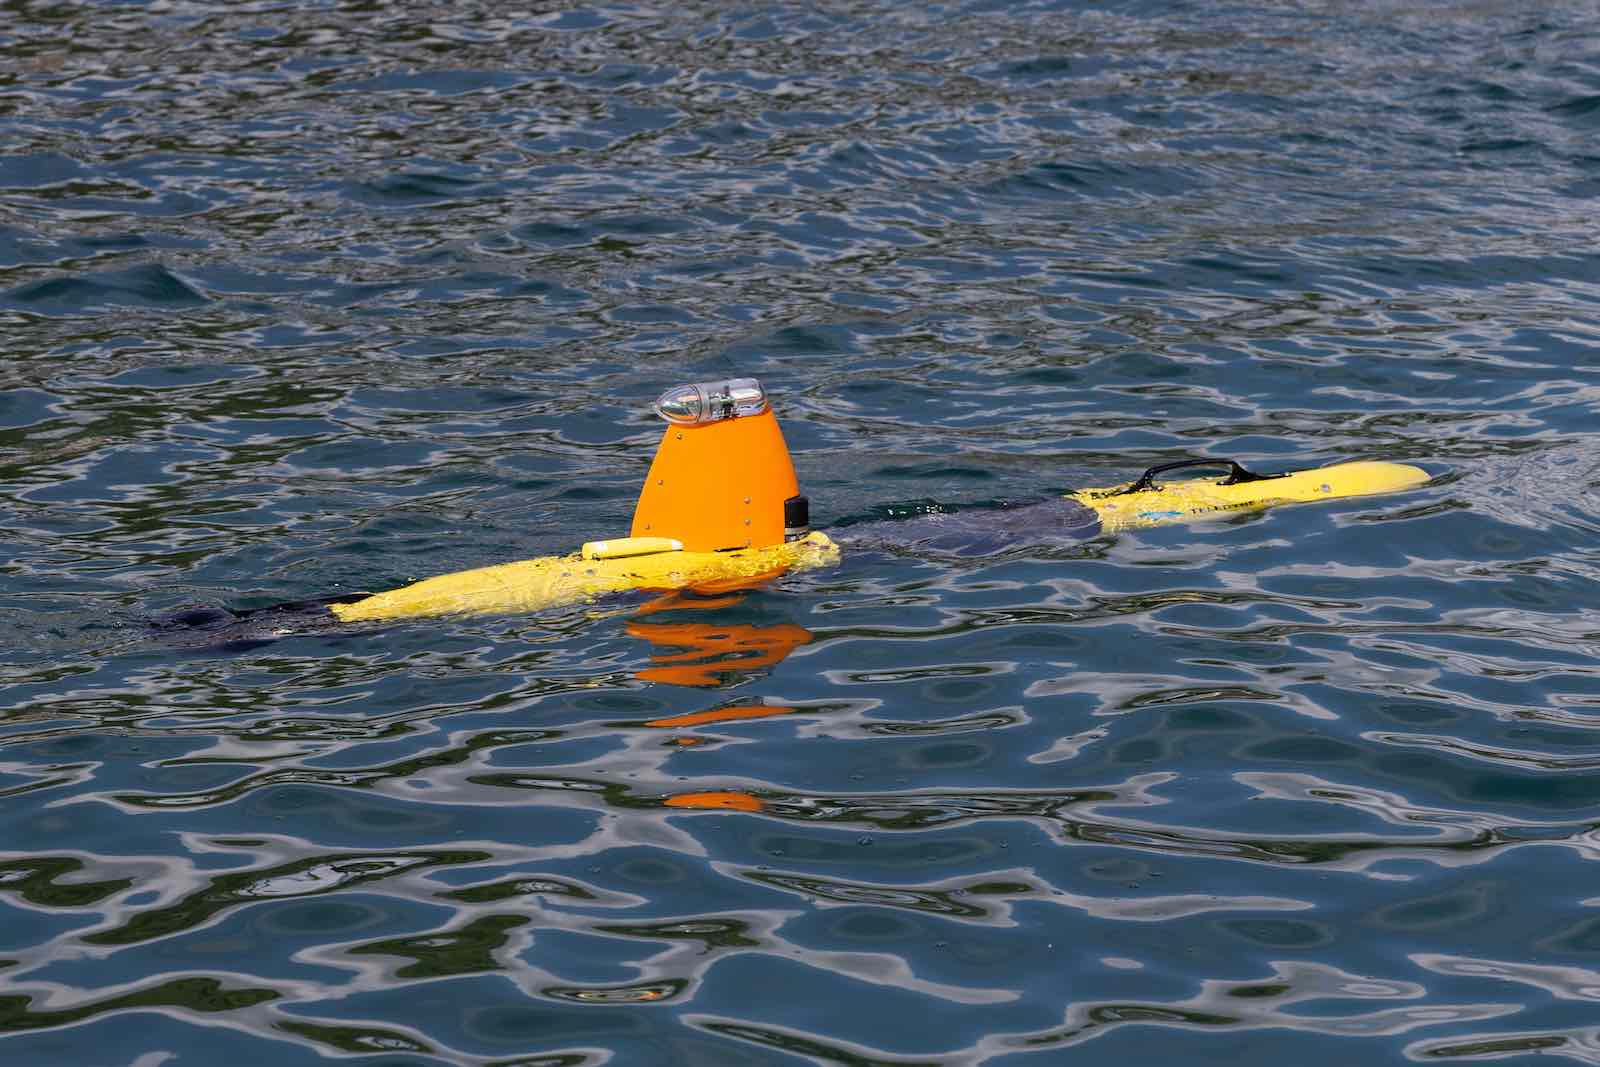 The Gavia Autonomous Underwater Vehicle, remotely piloted by the Australian Mine Warfare Team (Department of Defence)